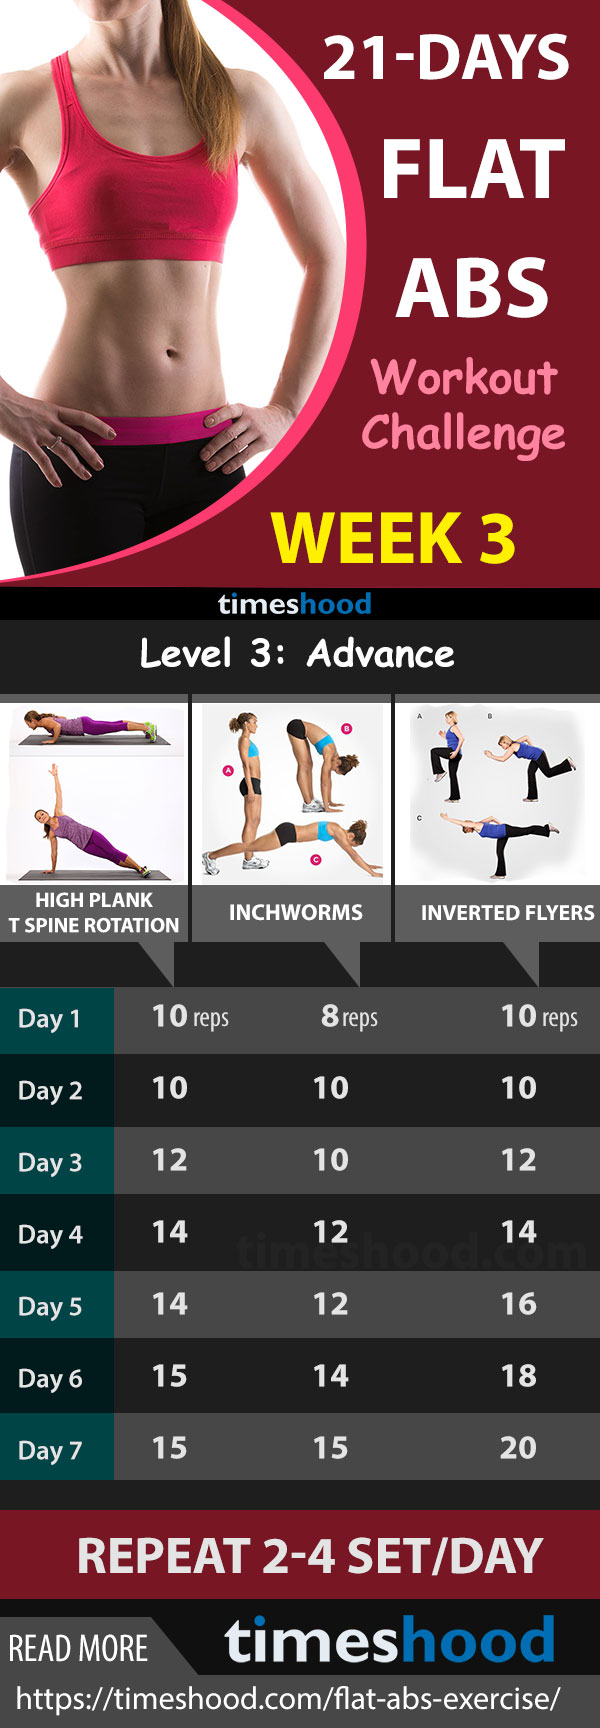 How to get abs fast? Try this 21 days abs workout challenge for flat tummy. These are best abs exercise for women. To get rid of belly fat, you absolutely try this 3 week challenge for flat tummy. Best exercise for flat tummy. Best abs exercise. Best abdominal exercise for flat tummy. Abs workout challenge week 3.